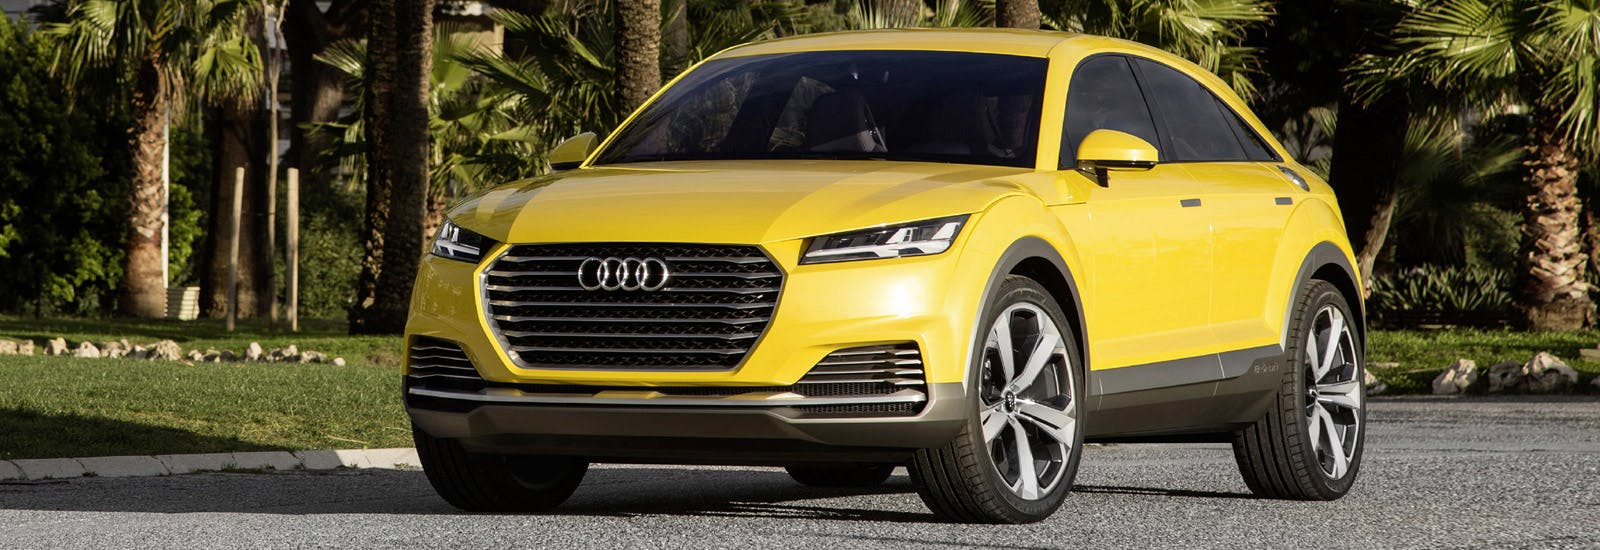 ... Audi q2 audi uk → 2017 audi q2 photos and info – news – car and